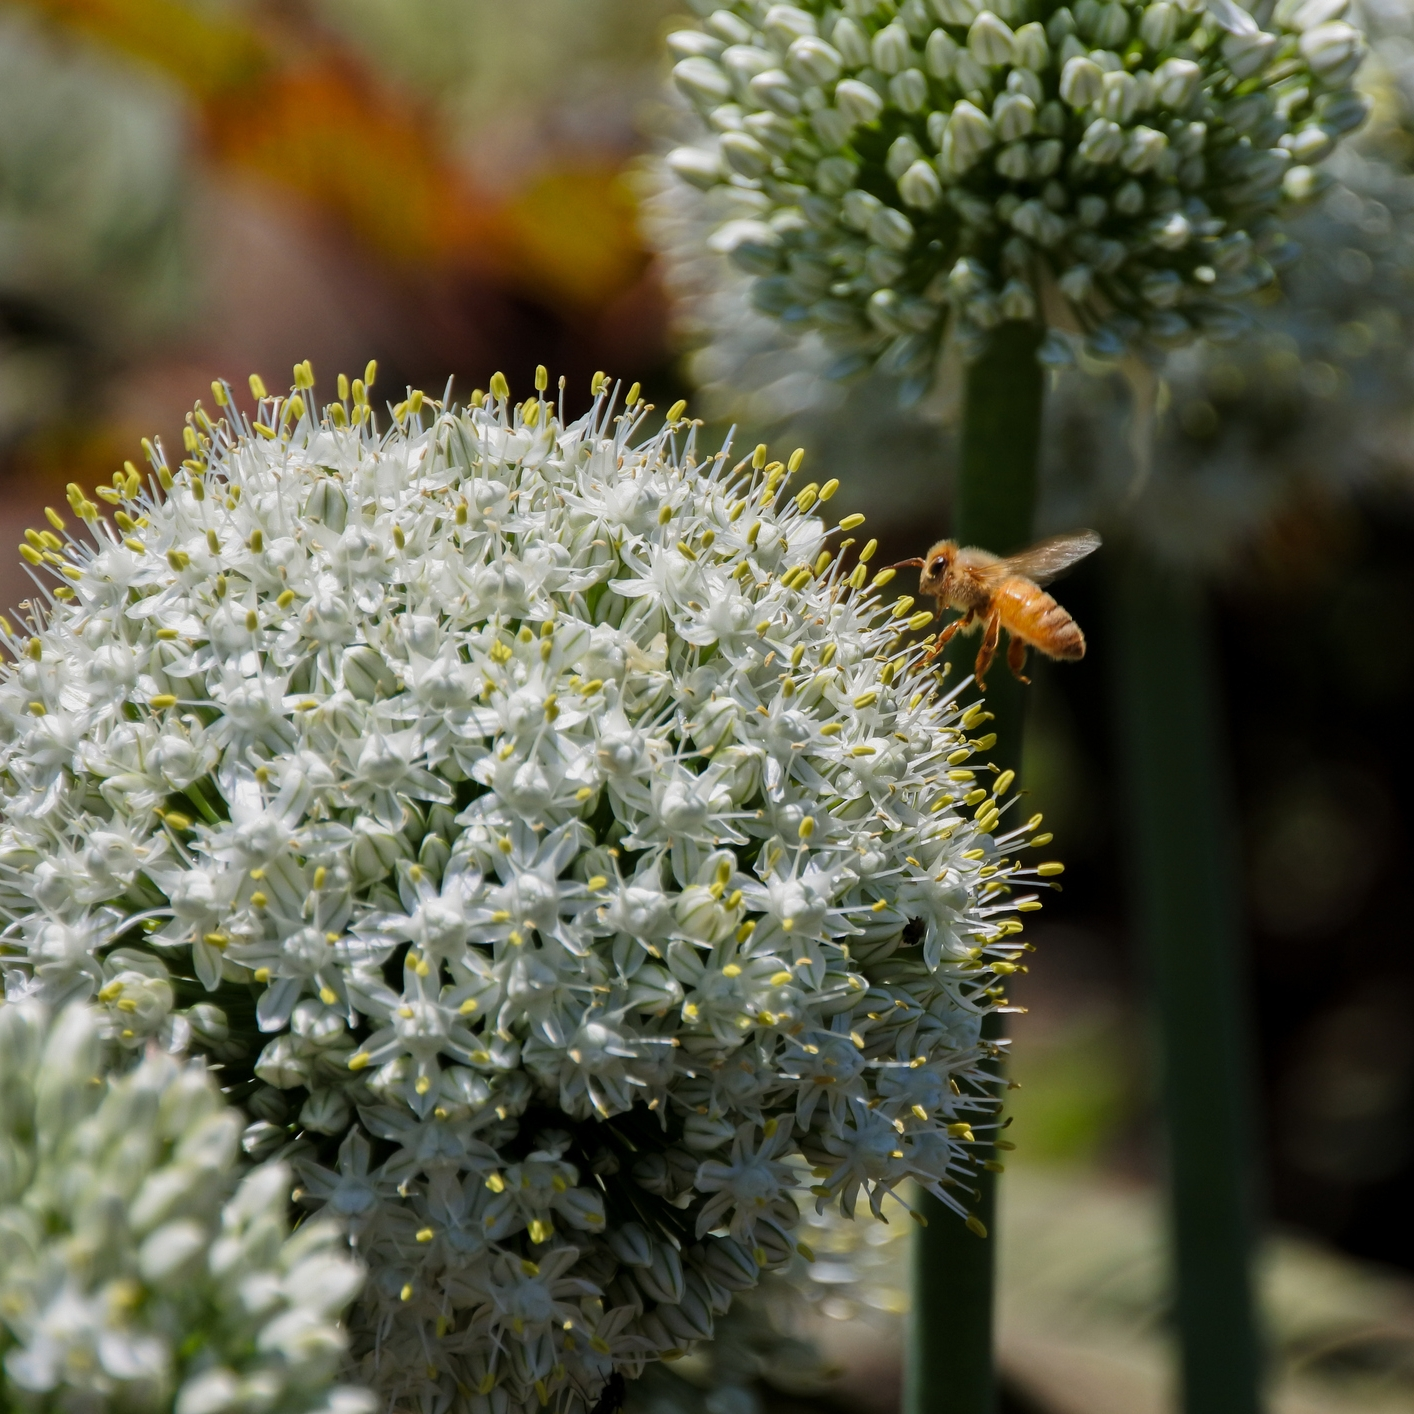 """Allium 'Mt. Everest' (Flowering Onion) - Zone: 4-9Bloom Size: 7"""" acrossHeight: 3-4""""Plant: 6"""" deepSpace: 6-8"""" apartSun/Shade: Full sunBloom Time: May-JunePlacement: Plant with 'Walker's Low' catmint, or 'Globemaster' allium"""